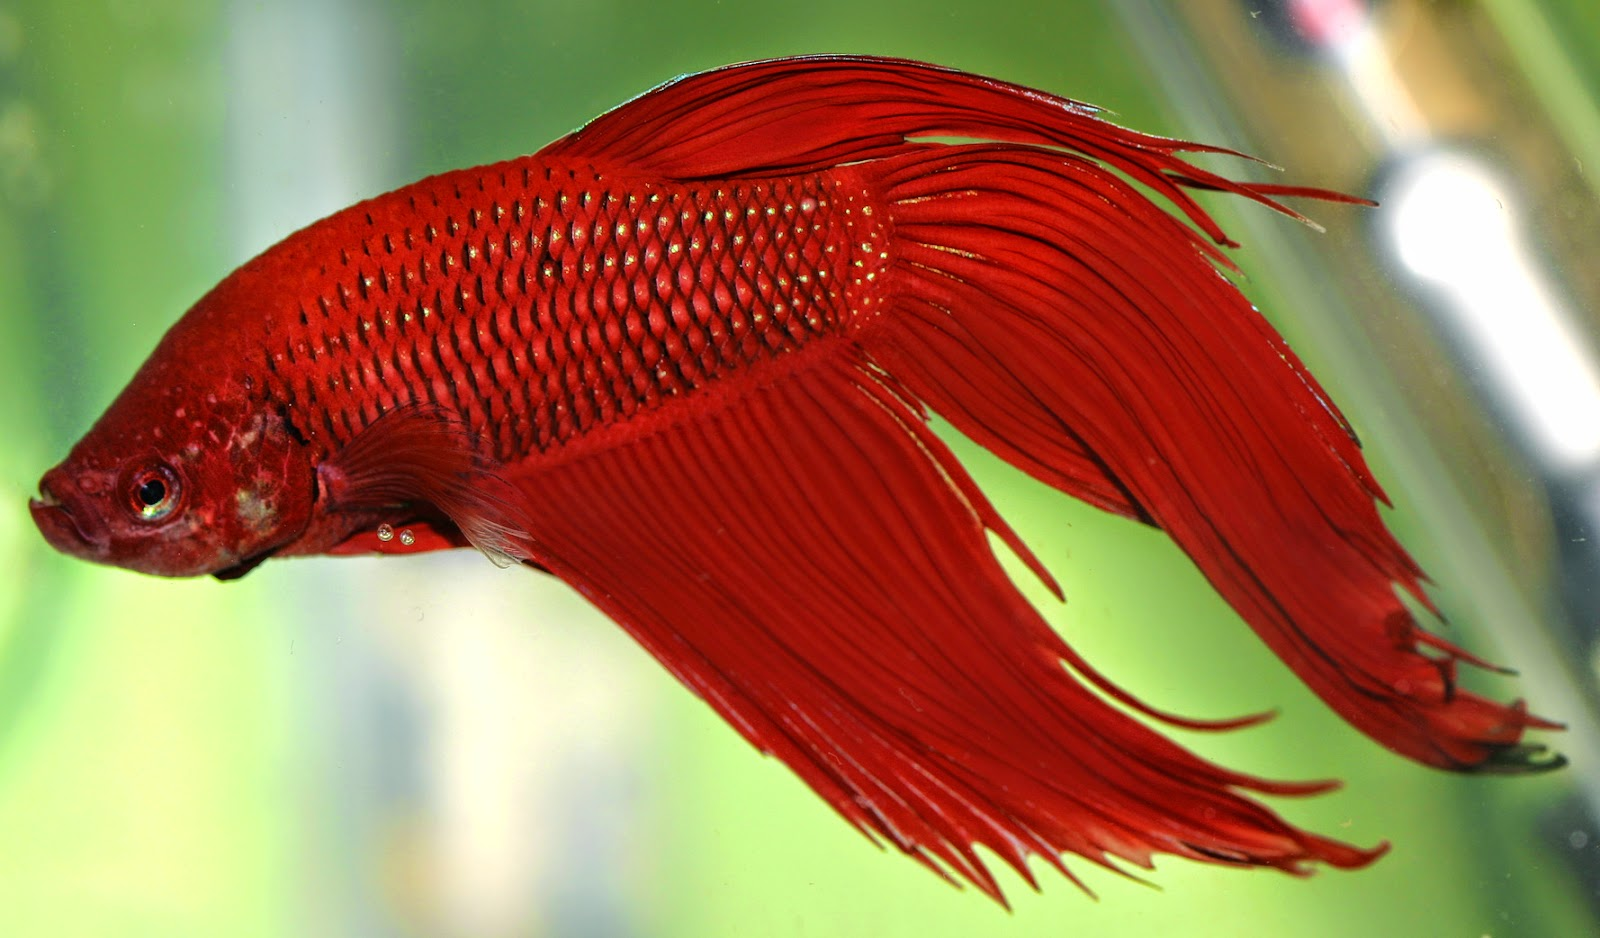 Dark red betta fish - photo#12